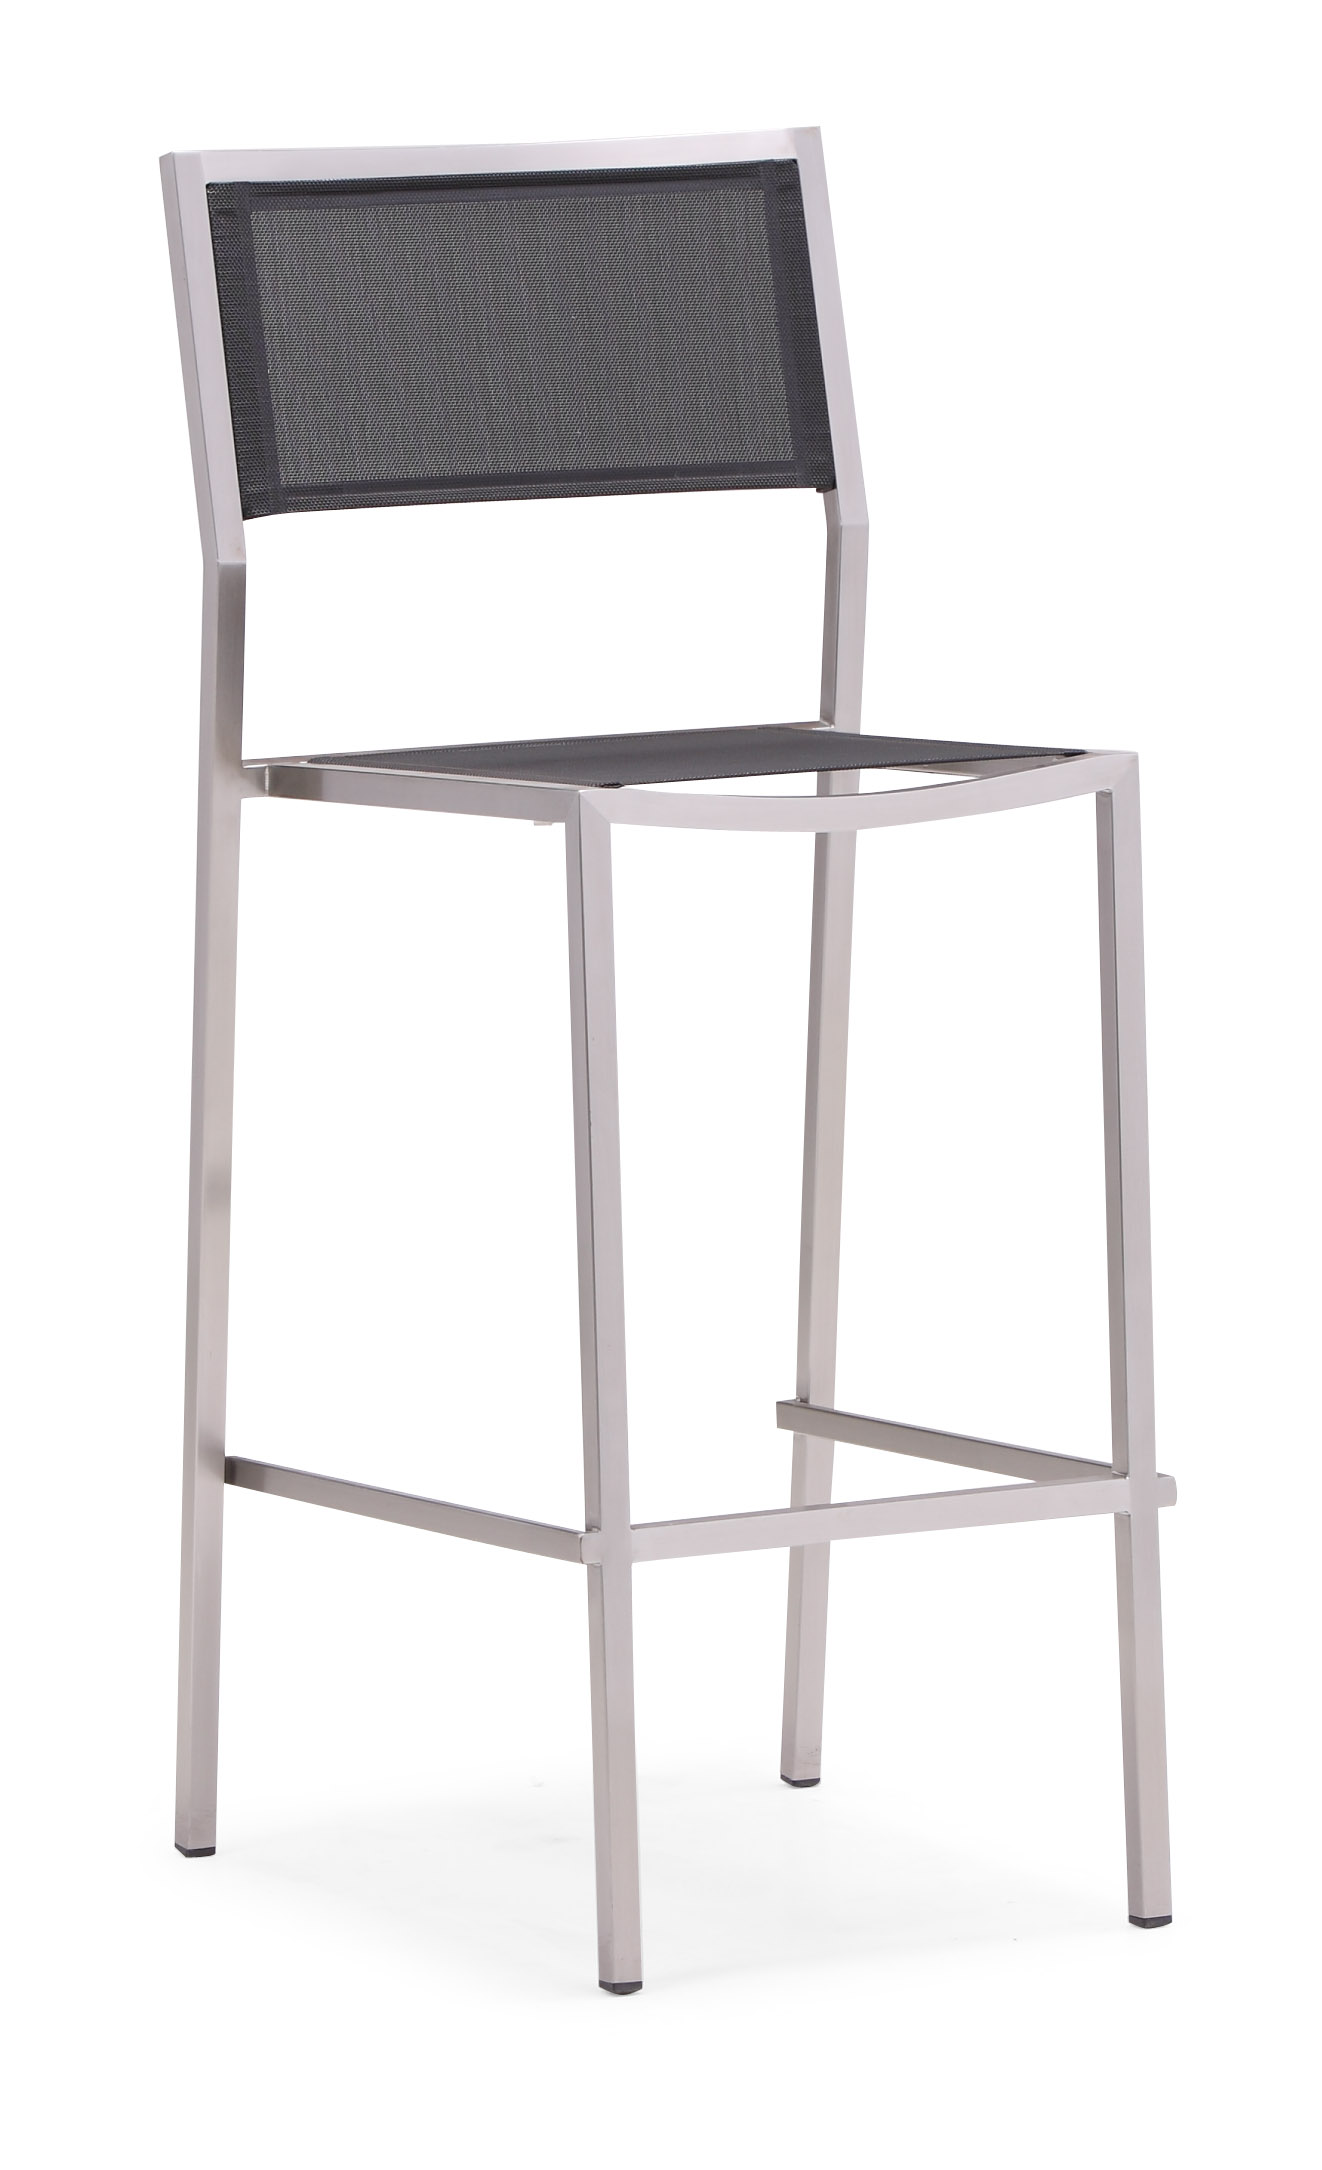 Outdoor textilene bar chair(B001B)